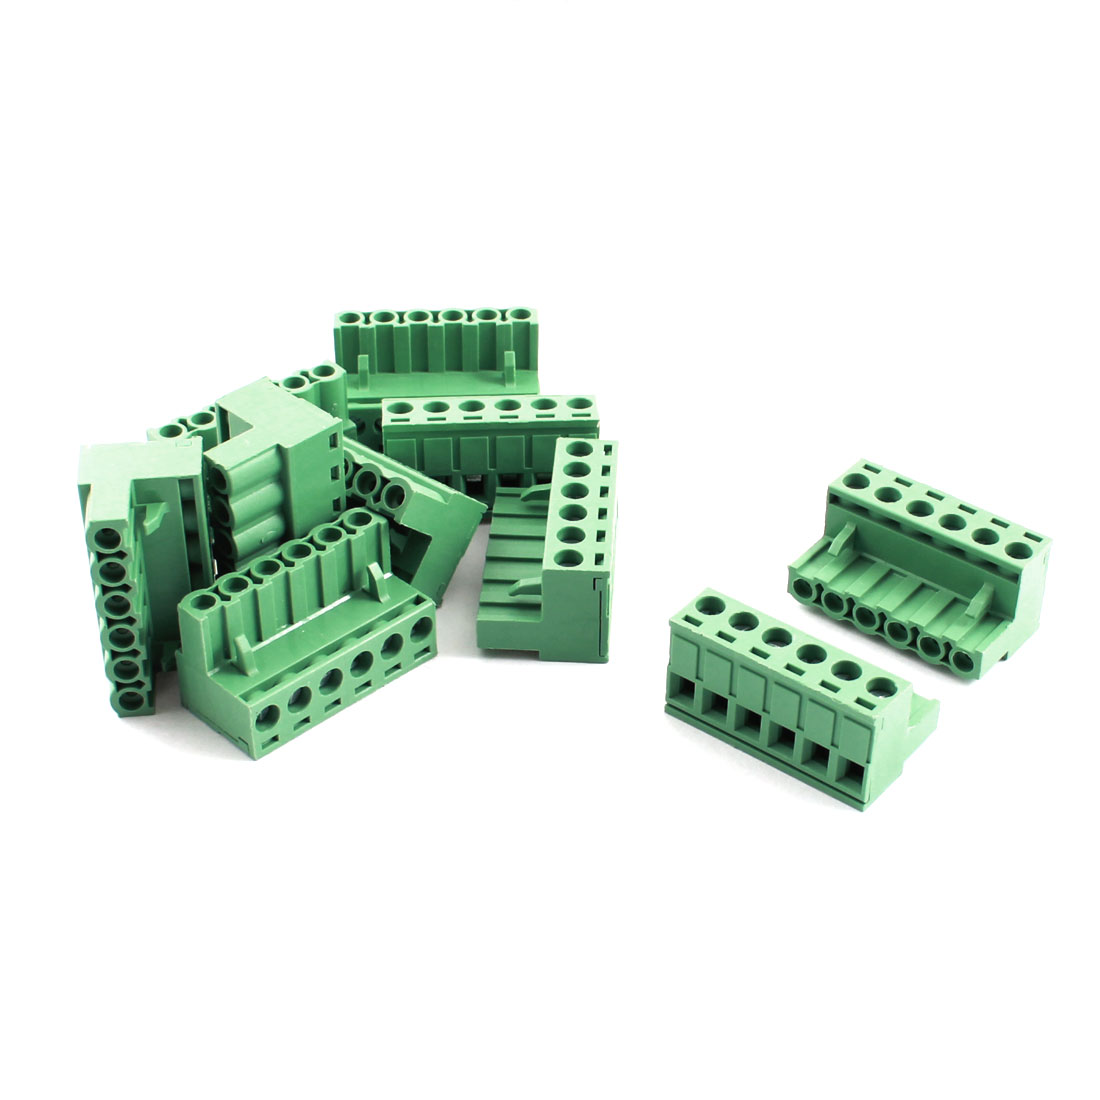 10Pcs AC 300V 16A 5.08mm Pitch 6 Way PCB Screw Terminal Barrier Block Strip Green for 14-22AWG Wire